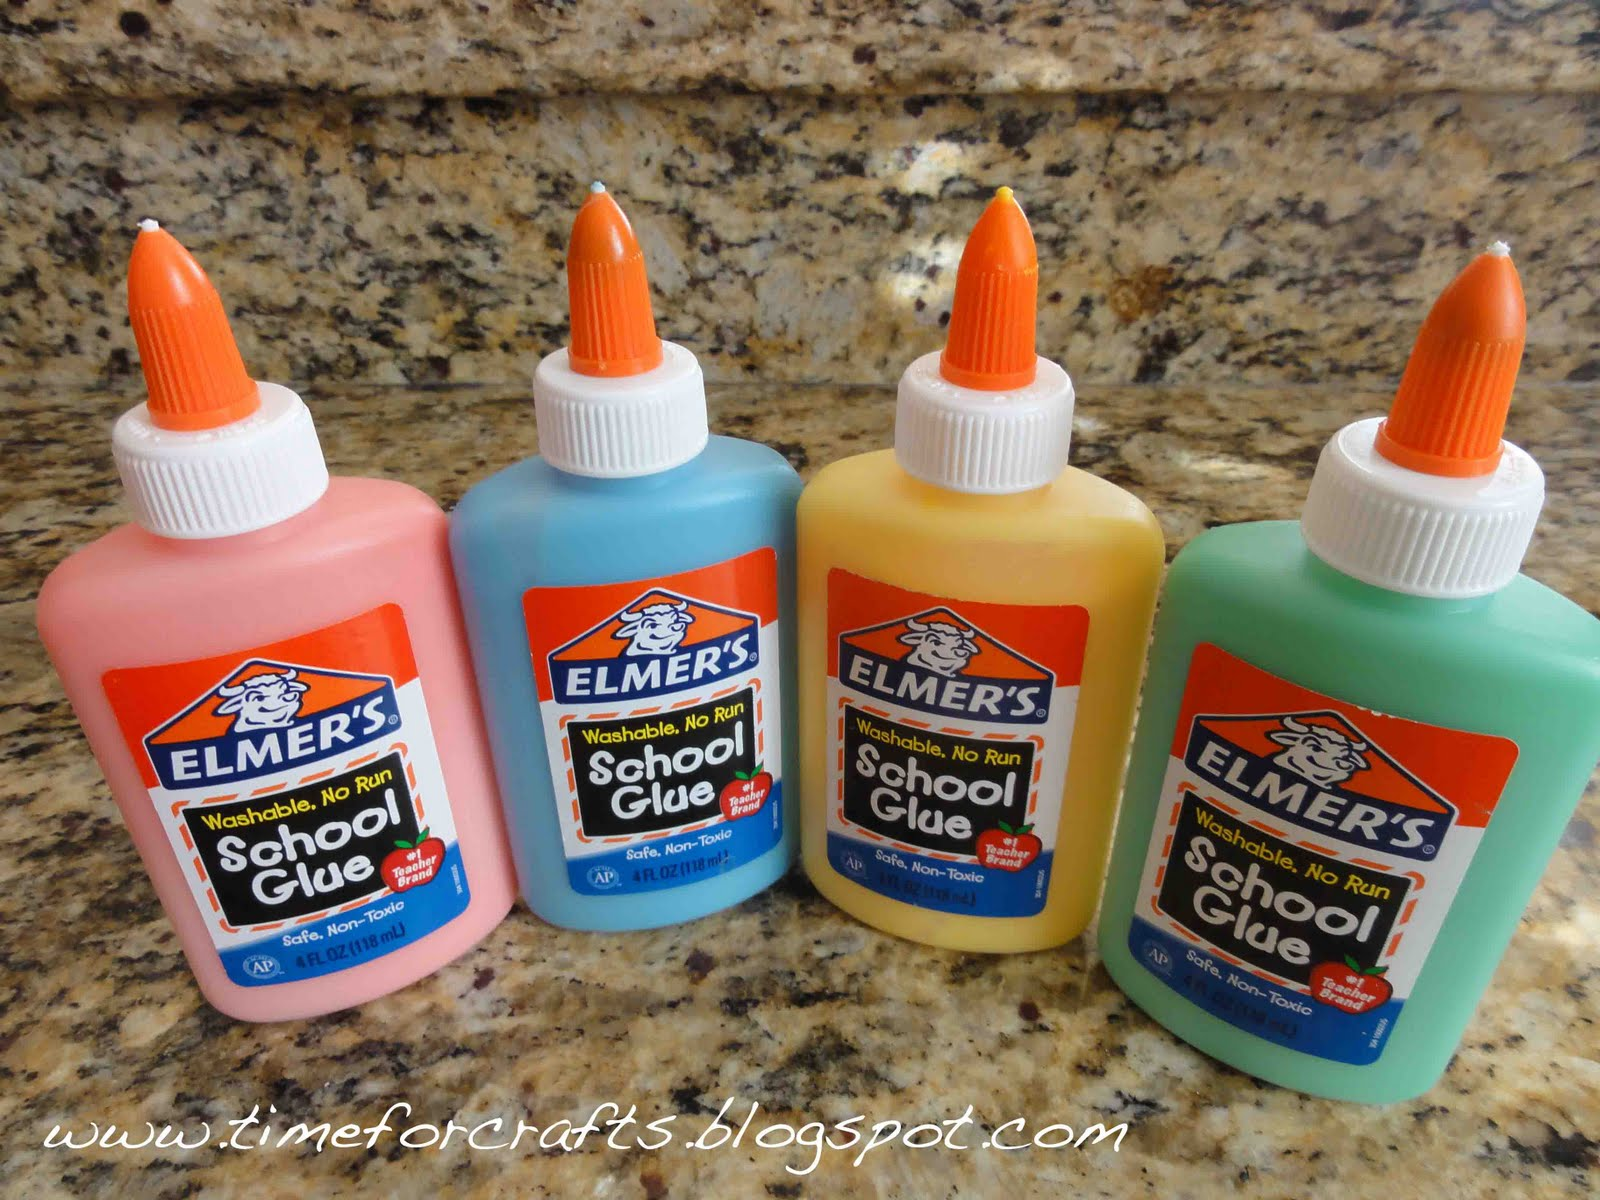 How To Tint Paint With Food Coloring